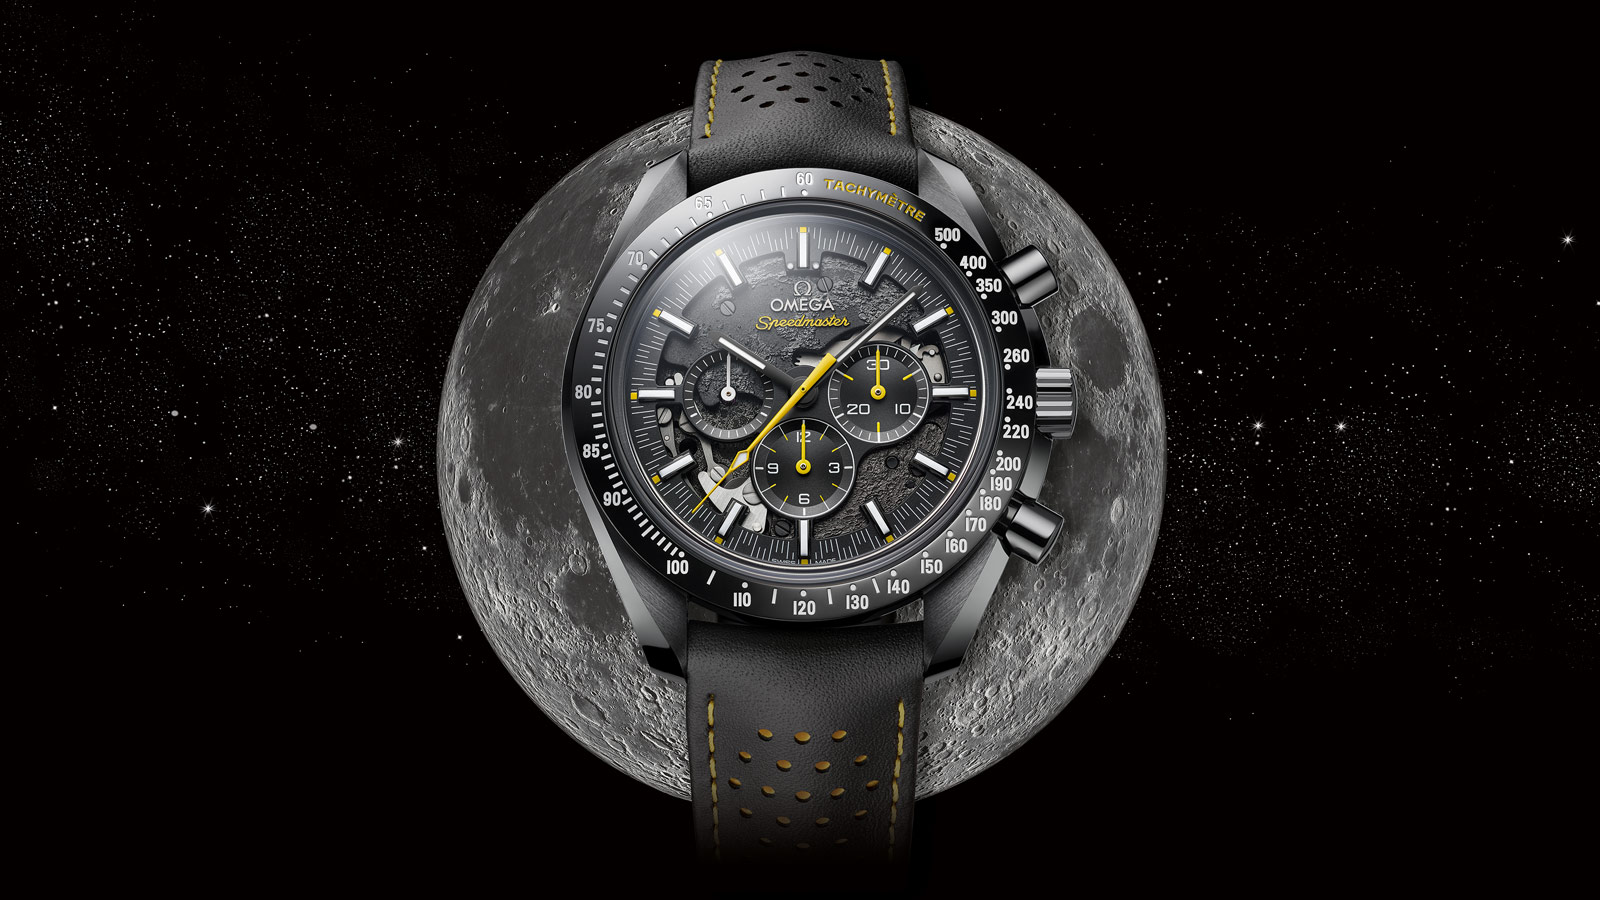 Speedmaster ムーンウォッチ Moonwatch Chronograph 44.25 mm ウォッチ - 311.92.44.30.01.001